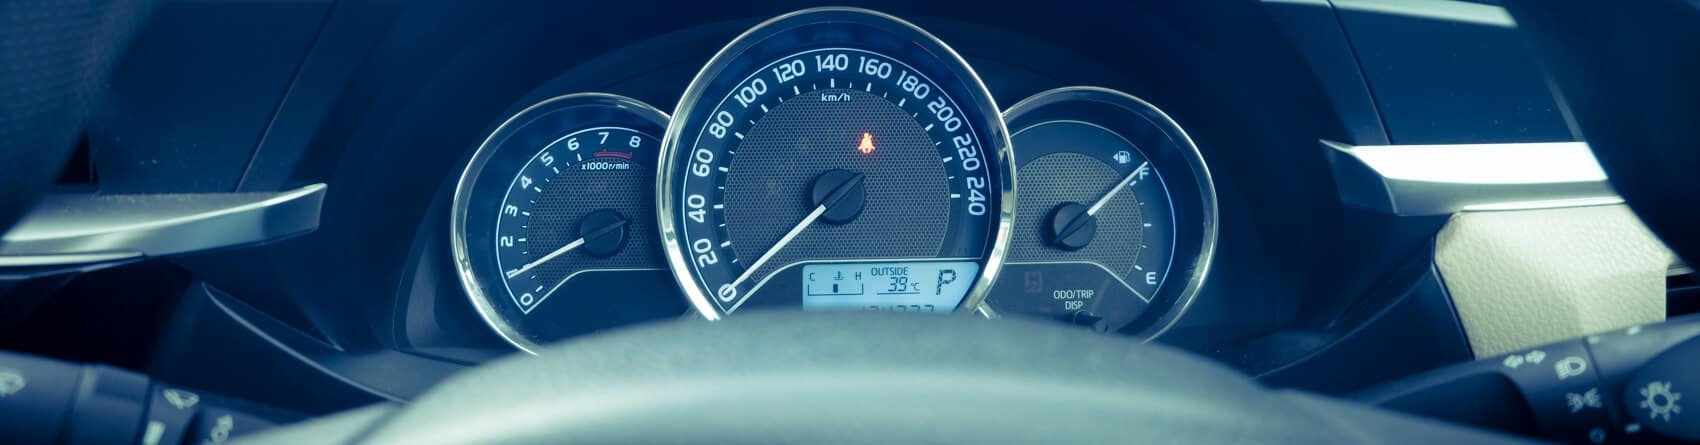 What's a Good Mileage for a Used Car?